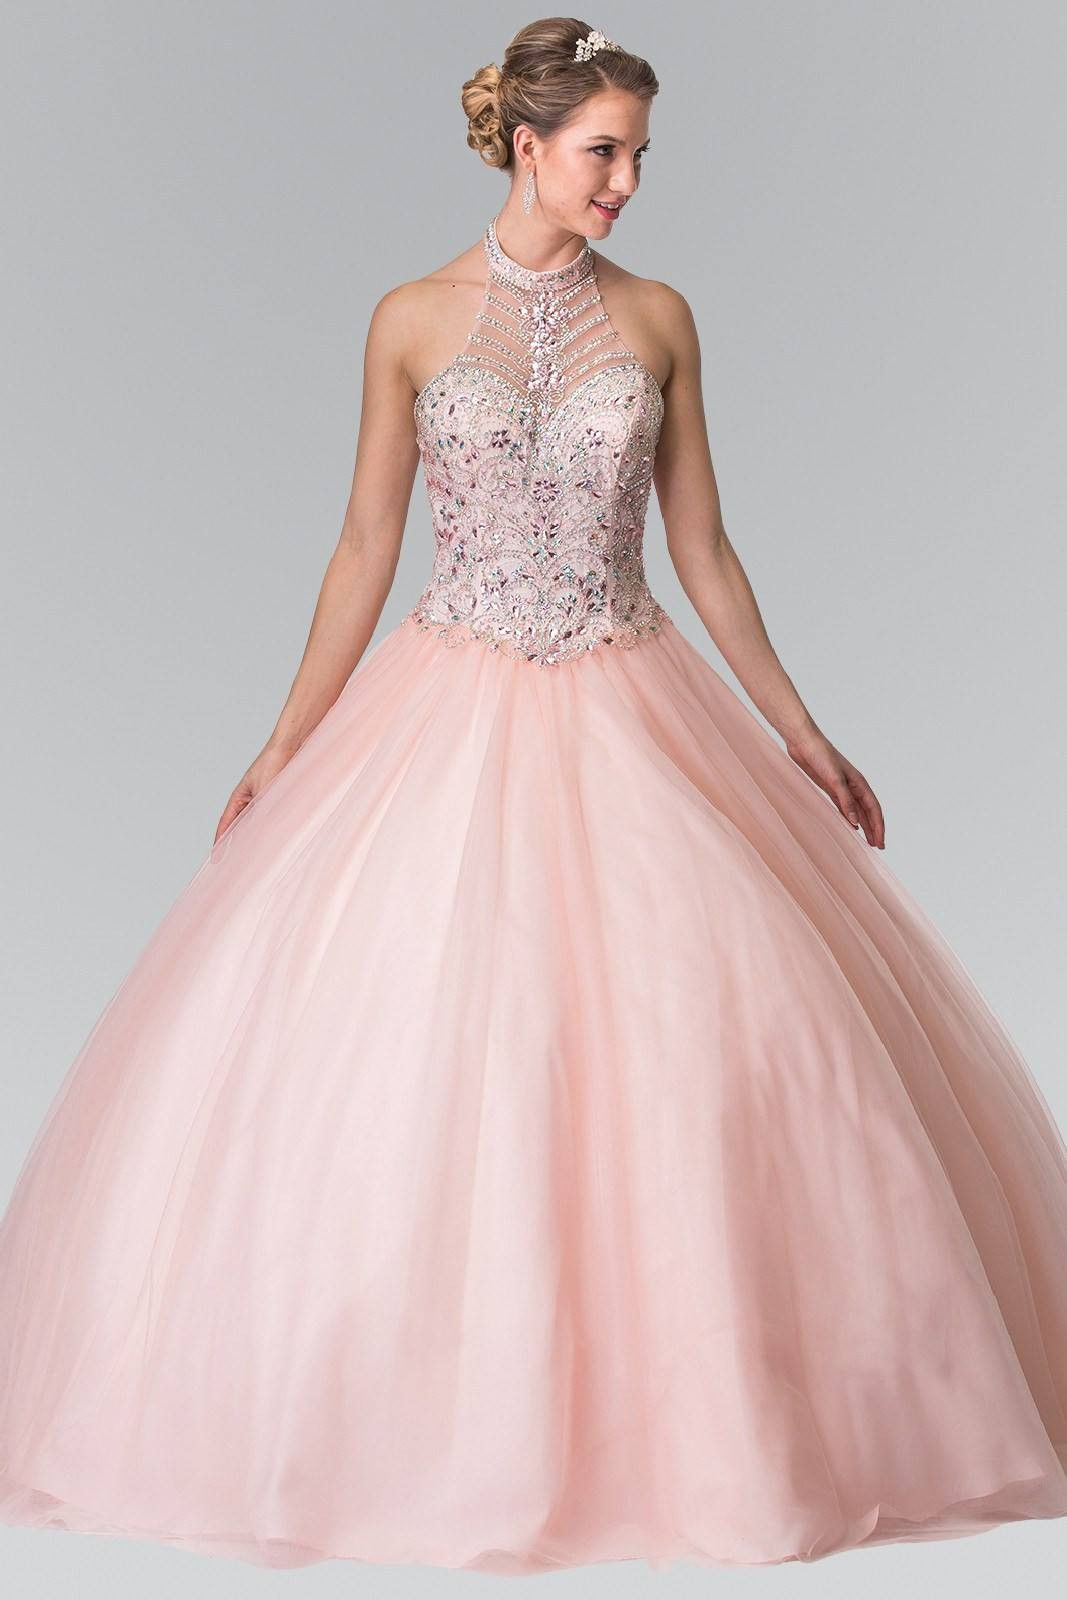 Ball gown prom dress Quinceanera gown gl2308blue | Ball gown prom ...